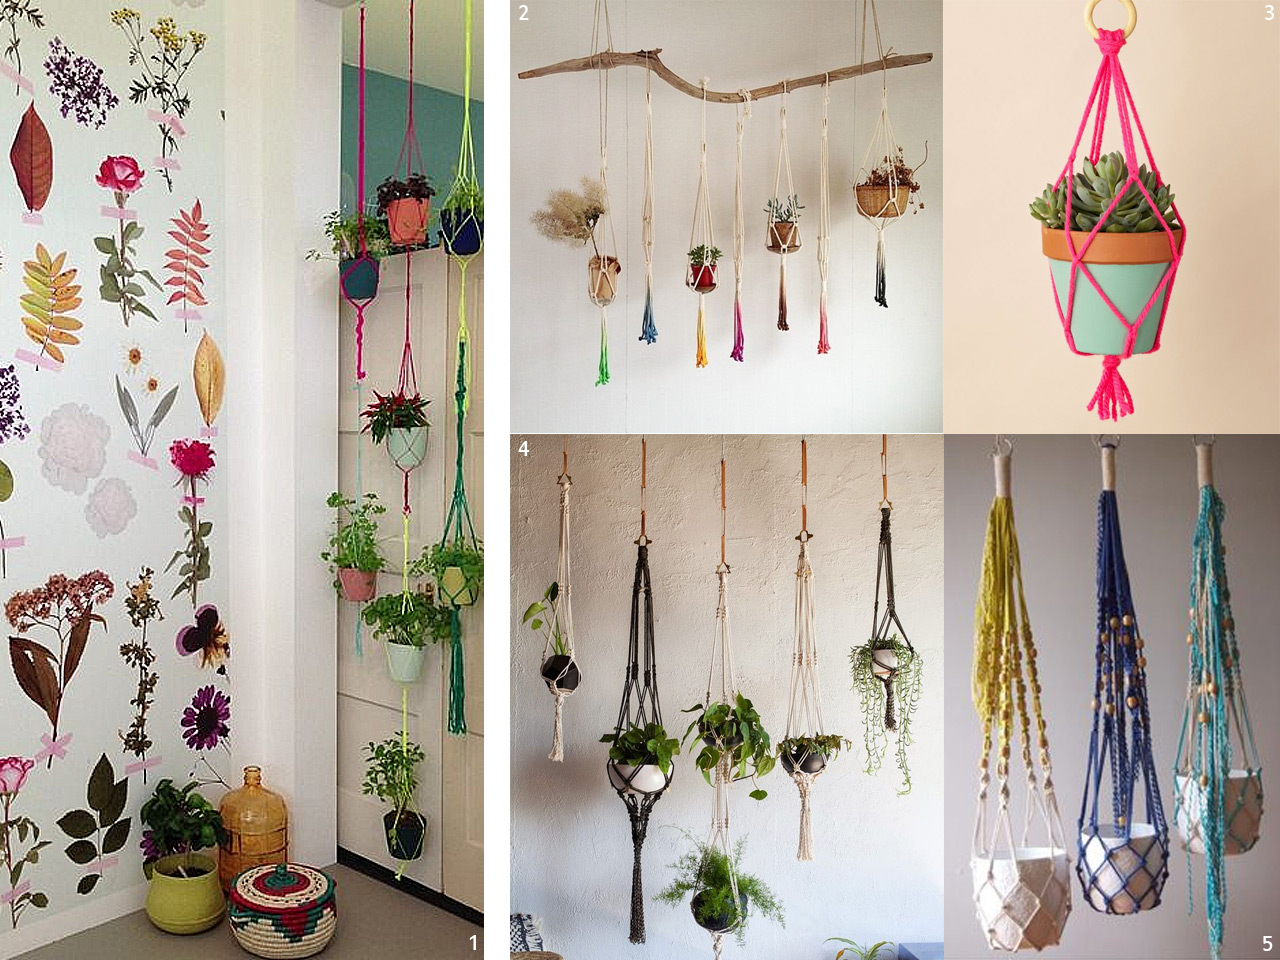 Decoraciones Hippies 5 Ideas Para Decorar Con Macramé